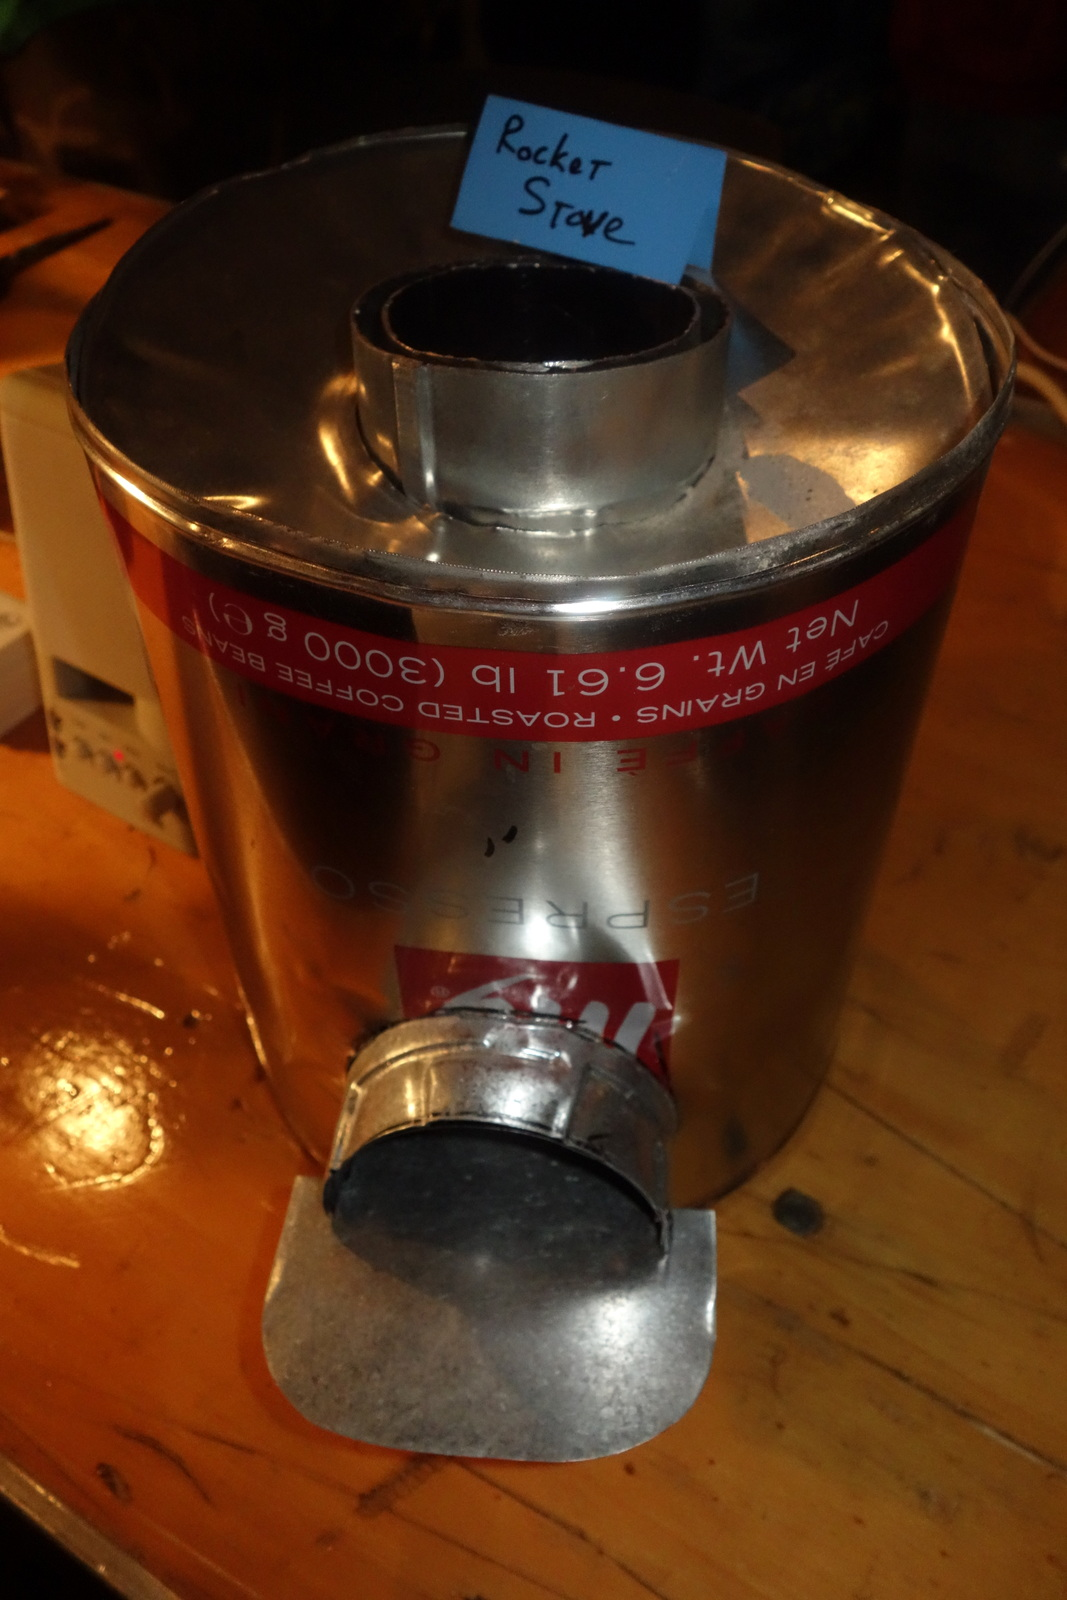 This 'Rocket Stove' made from a 3000g illy espresso can was presented by Pawtucket's hacker/makerspace Close Quarters.